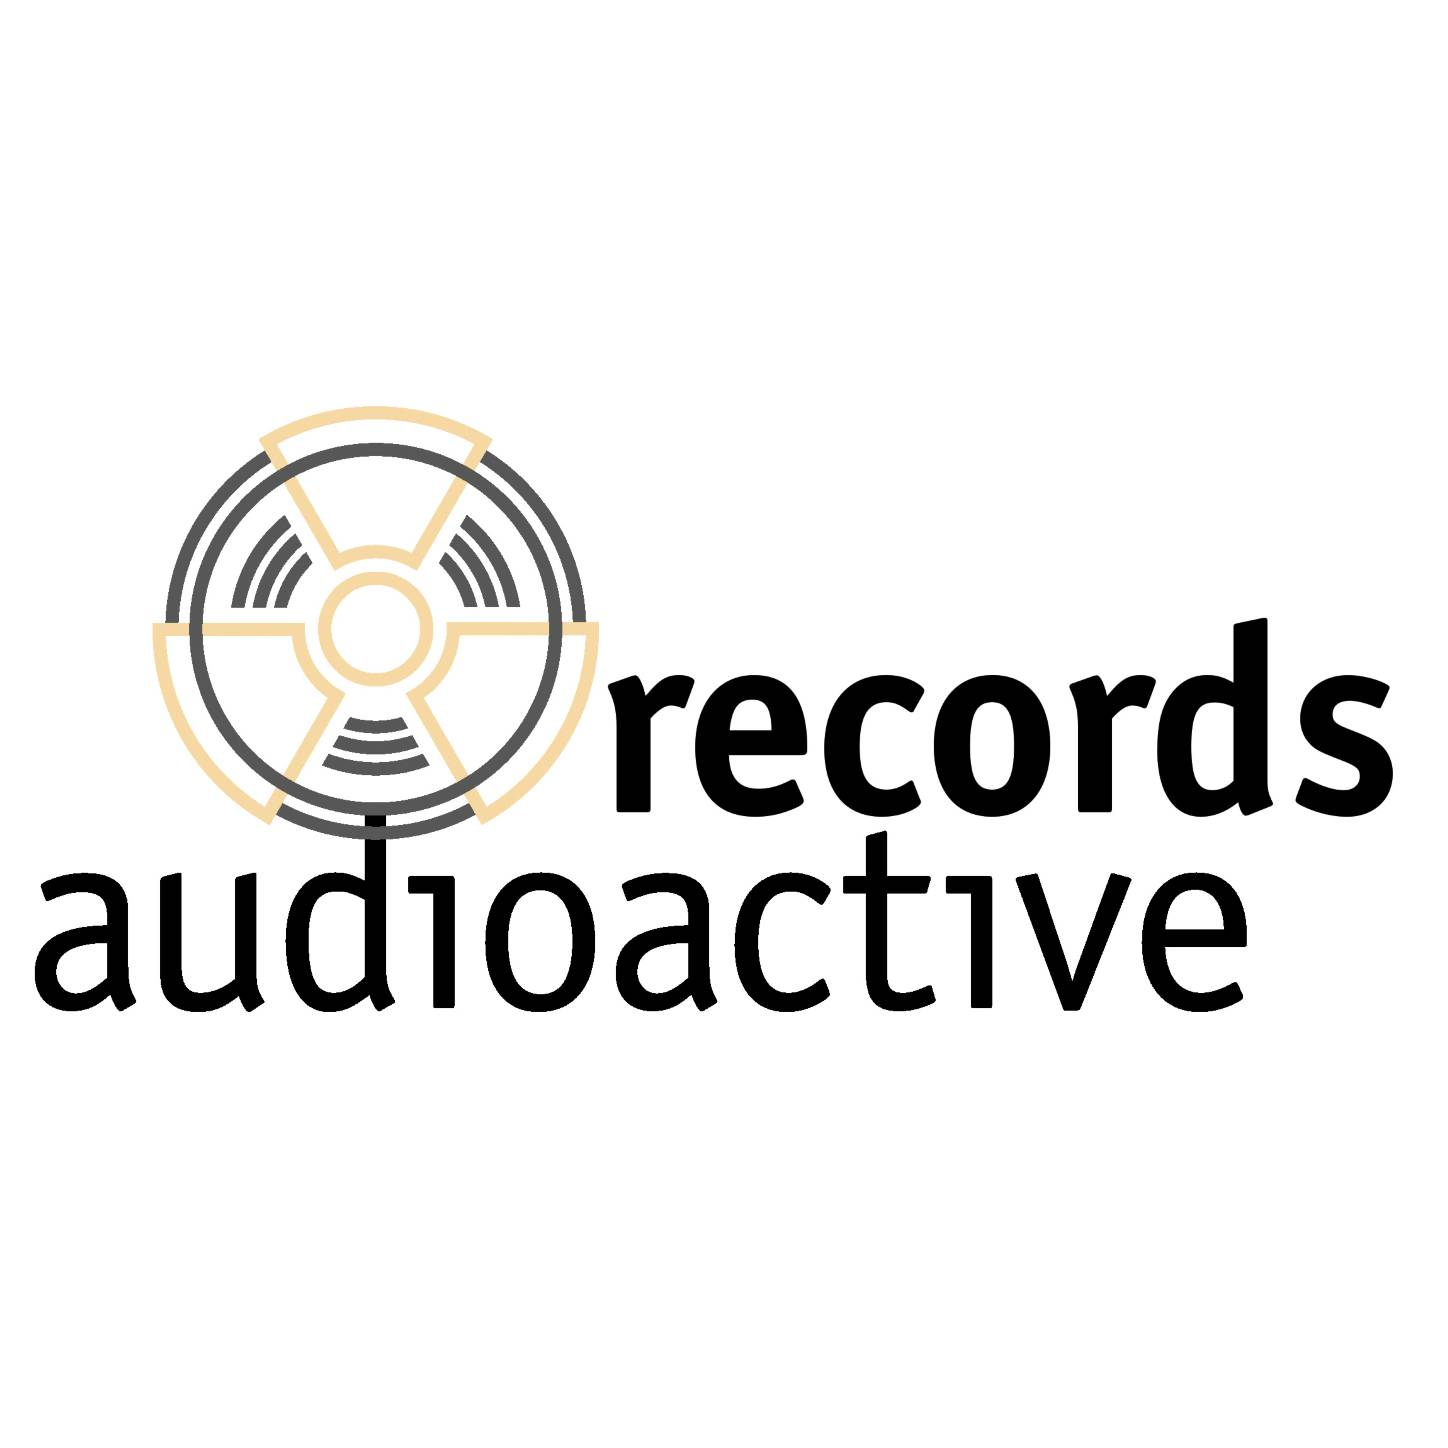 audioactive records logo Kopie